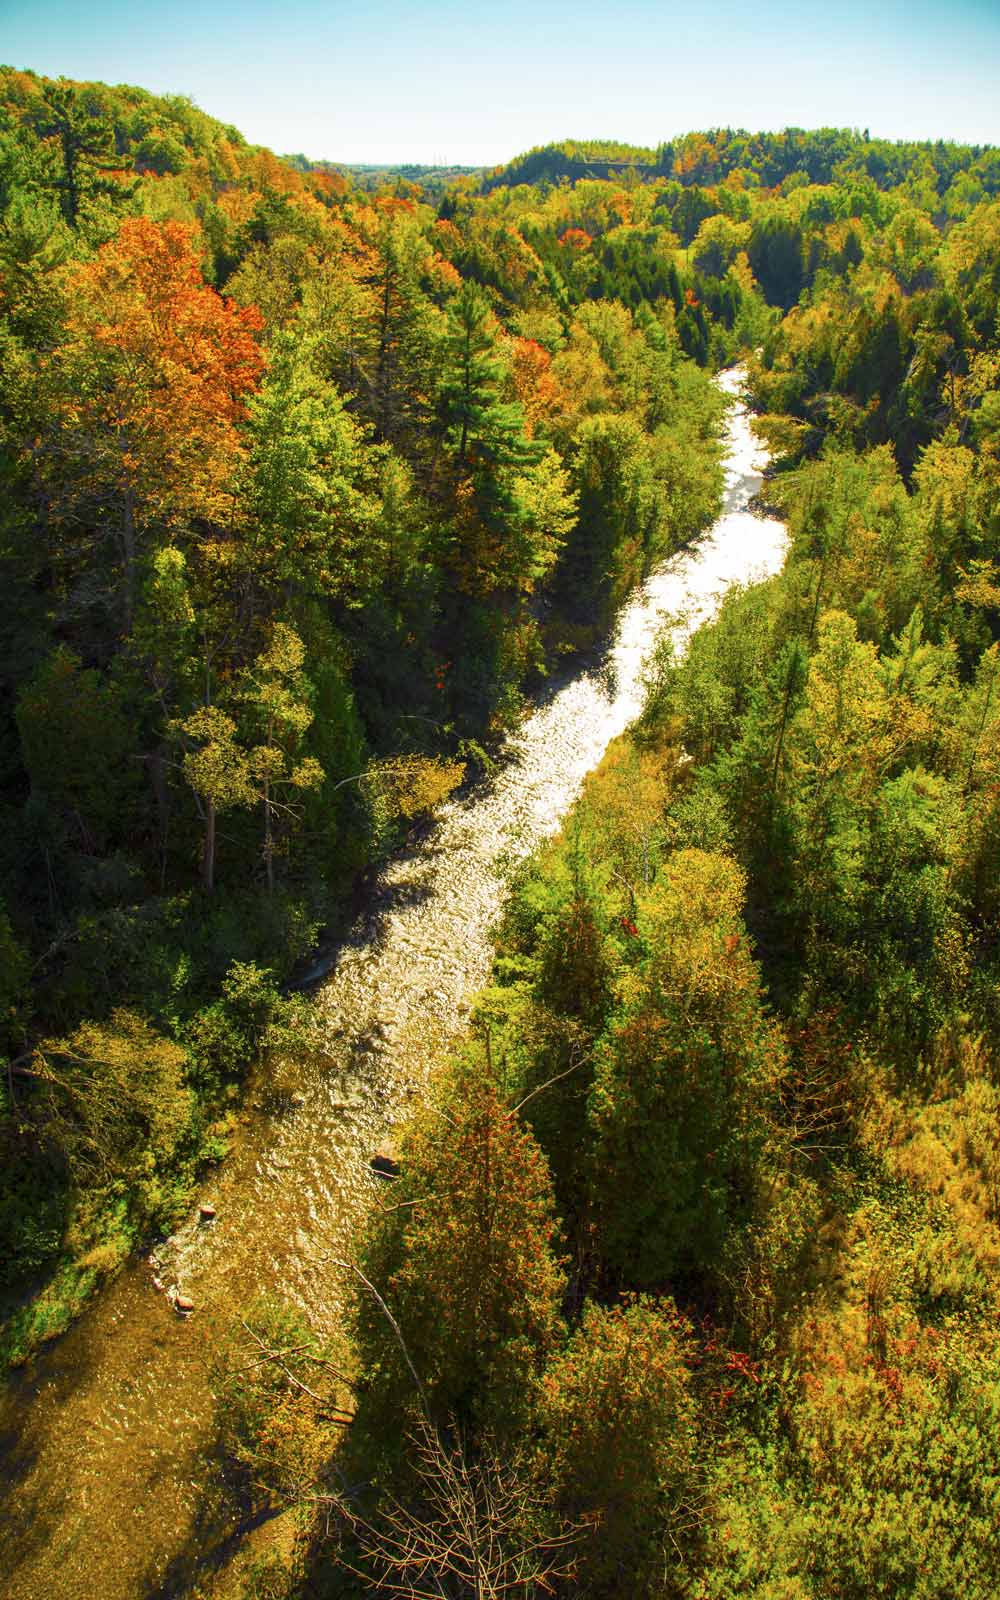 Stream in Forest at Seaton Trail Aerial in Pickering, ON